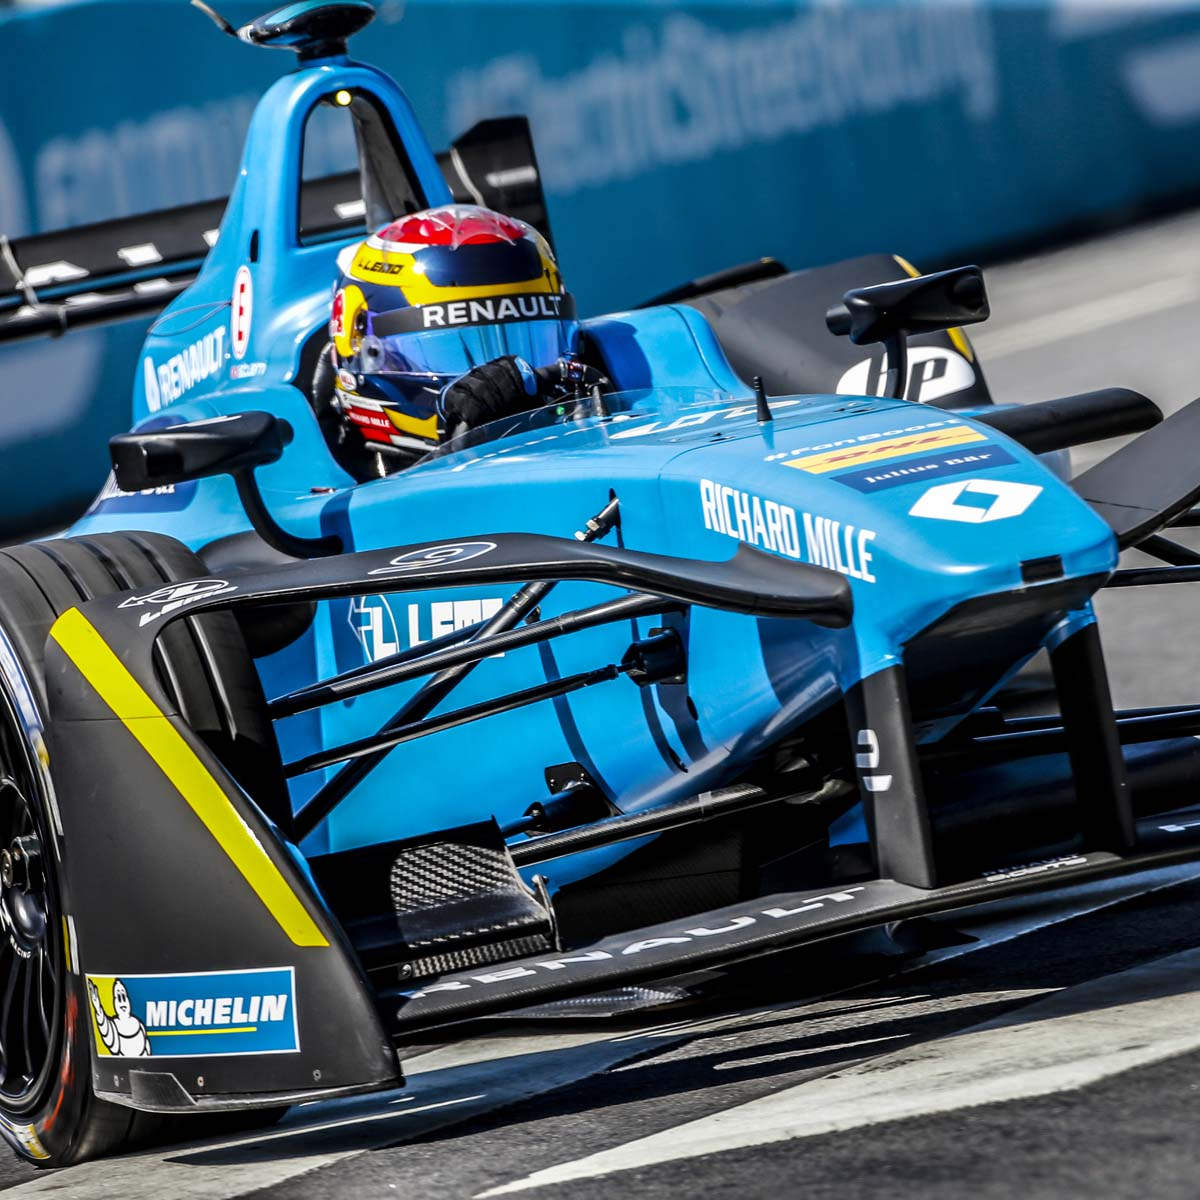 The Watch Quote: Photo - Richard Mille congratulates Sébastien Buemi on his victory in the Buenos Aires ePrix